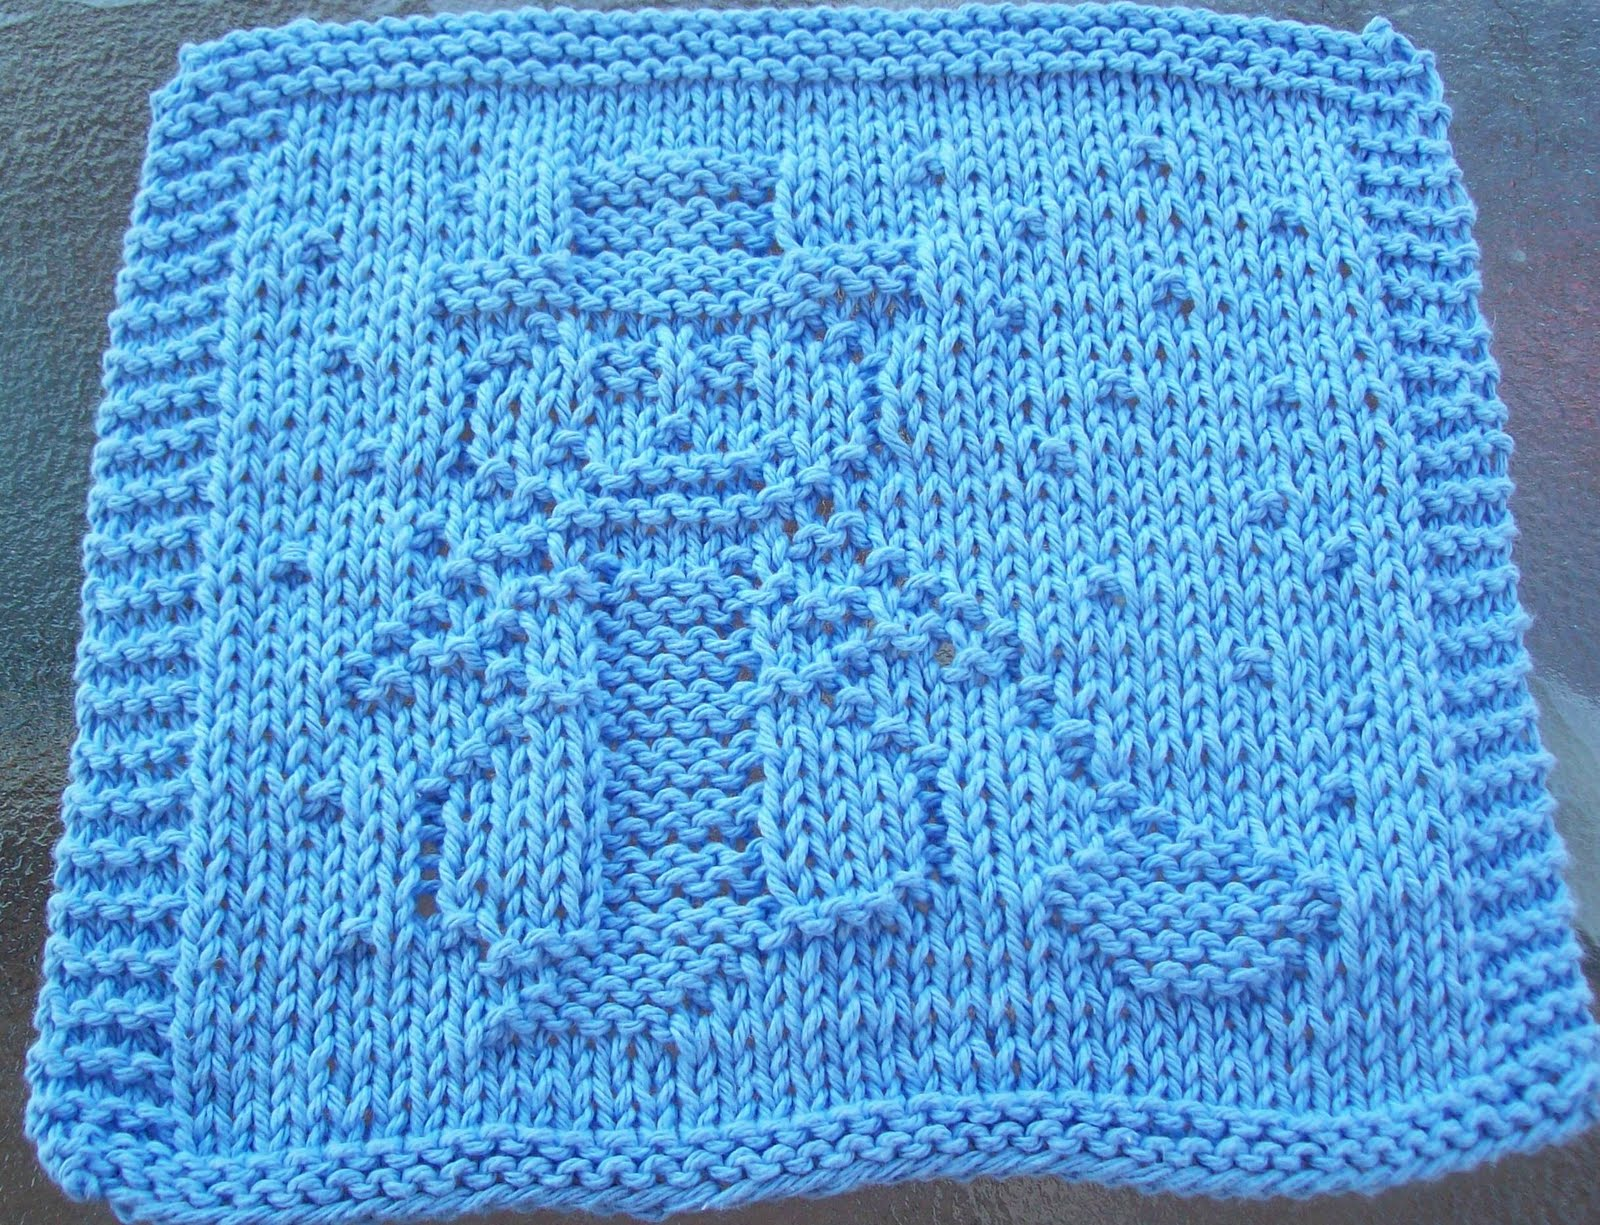 Knitted Dishcloth Patterns : DigKnitty Designs: November 2009